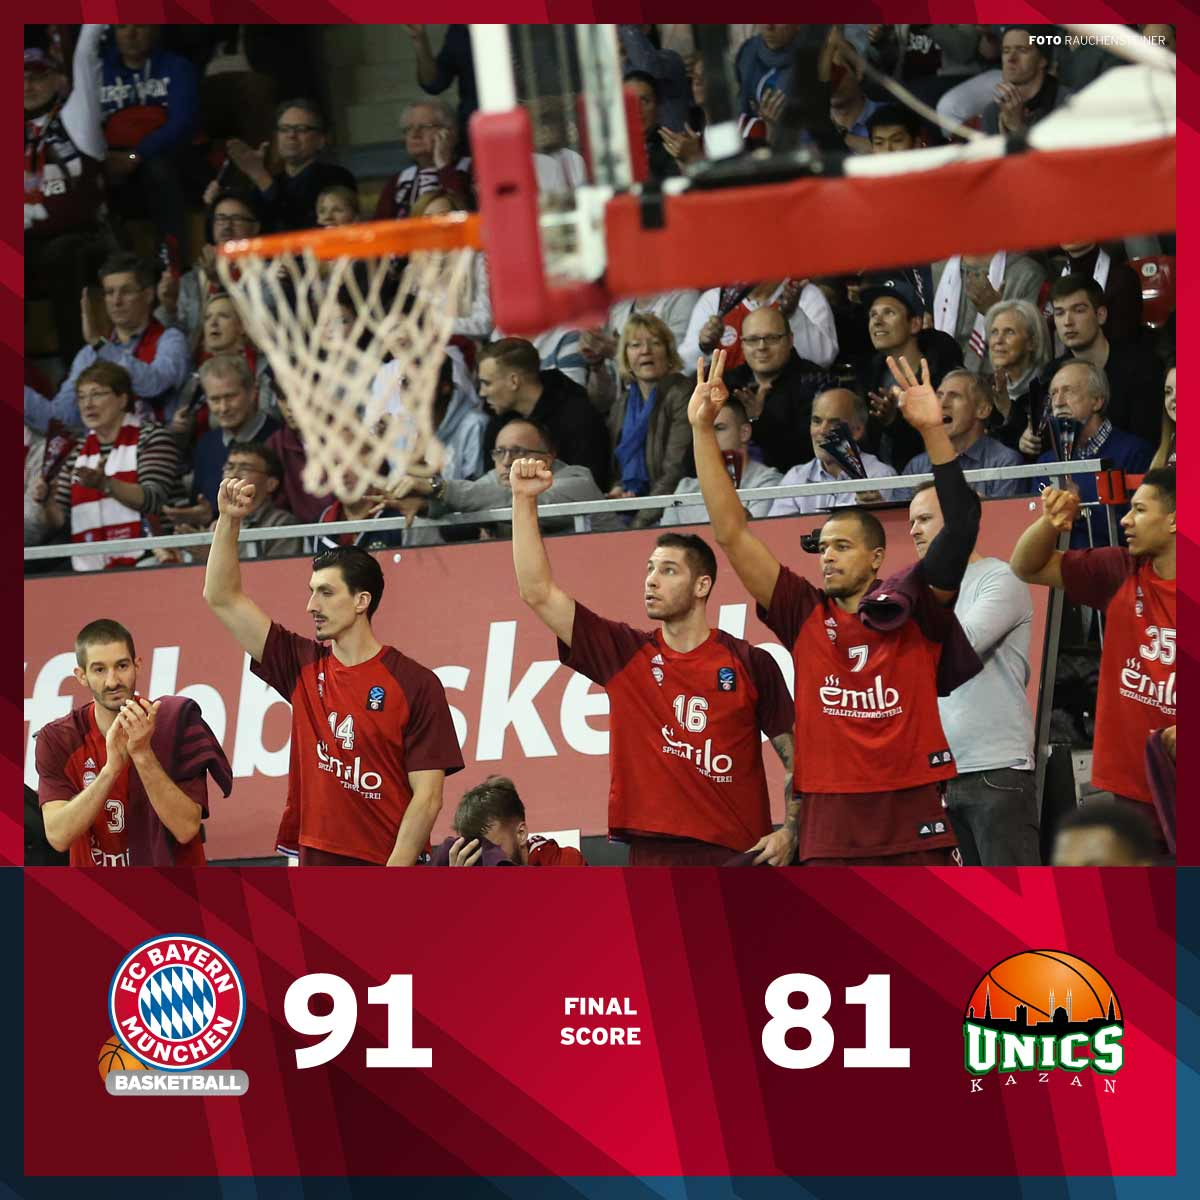 fc bayern basketball fcb basketball m nchen latest news breaking headlines and top stories. Black Bedroom Furniture Sets. Home Design Ideas